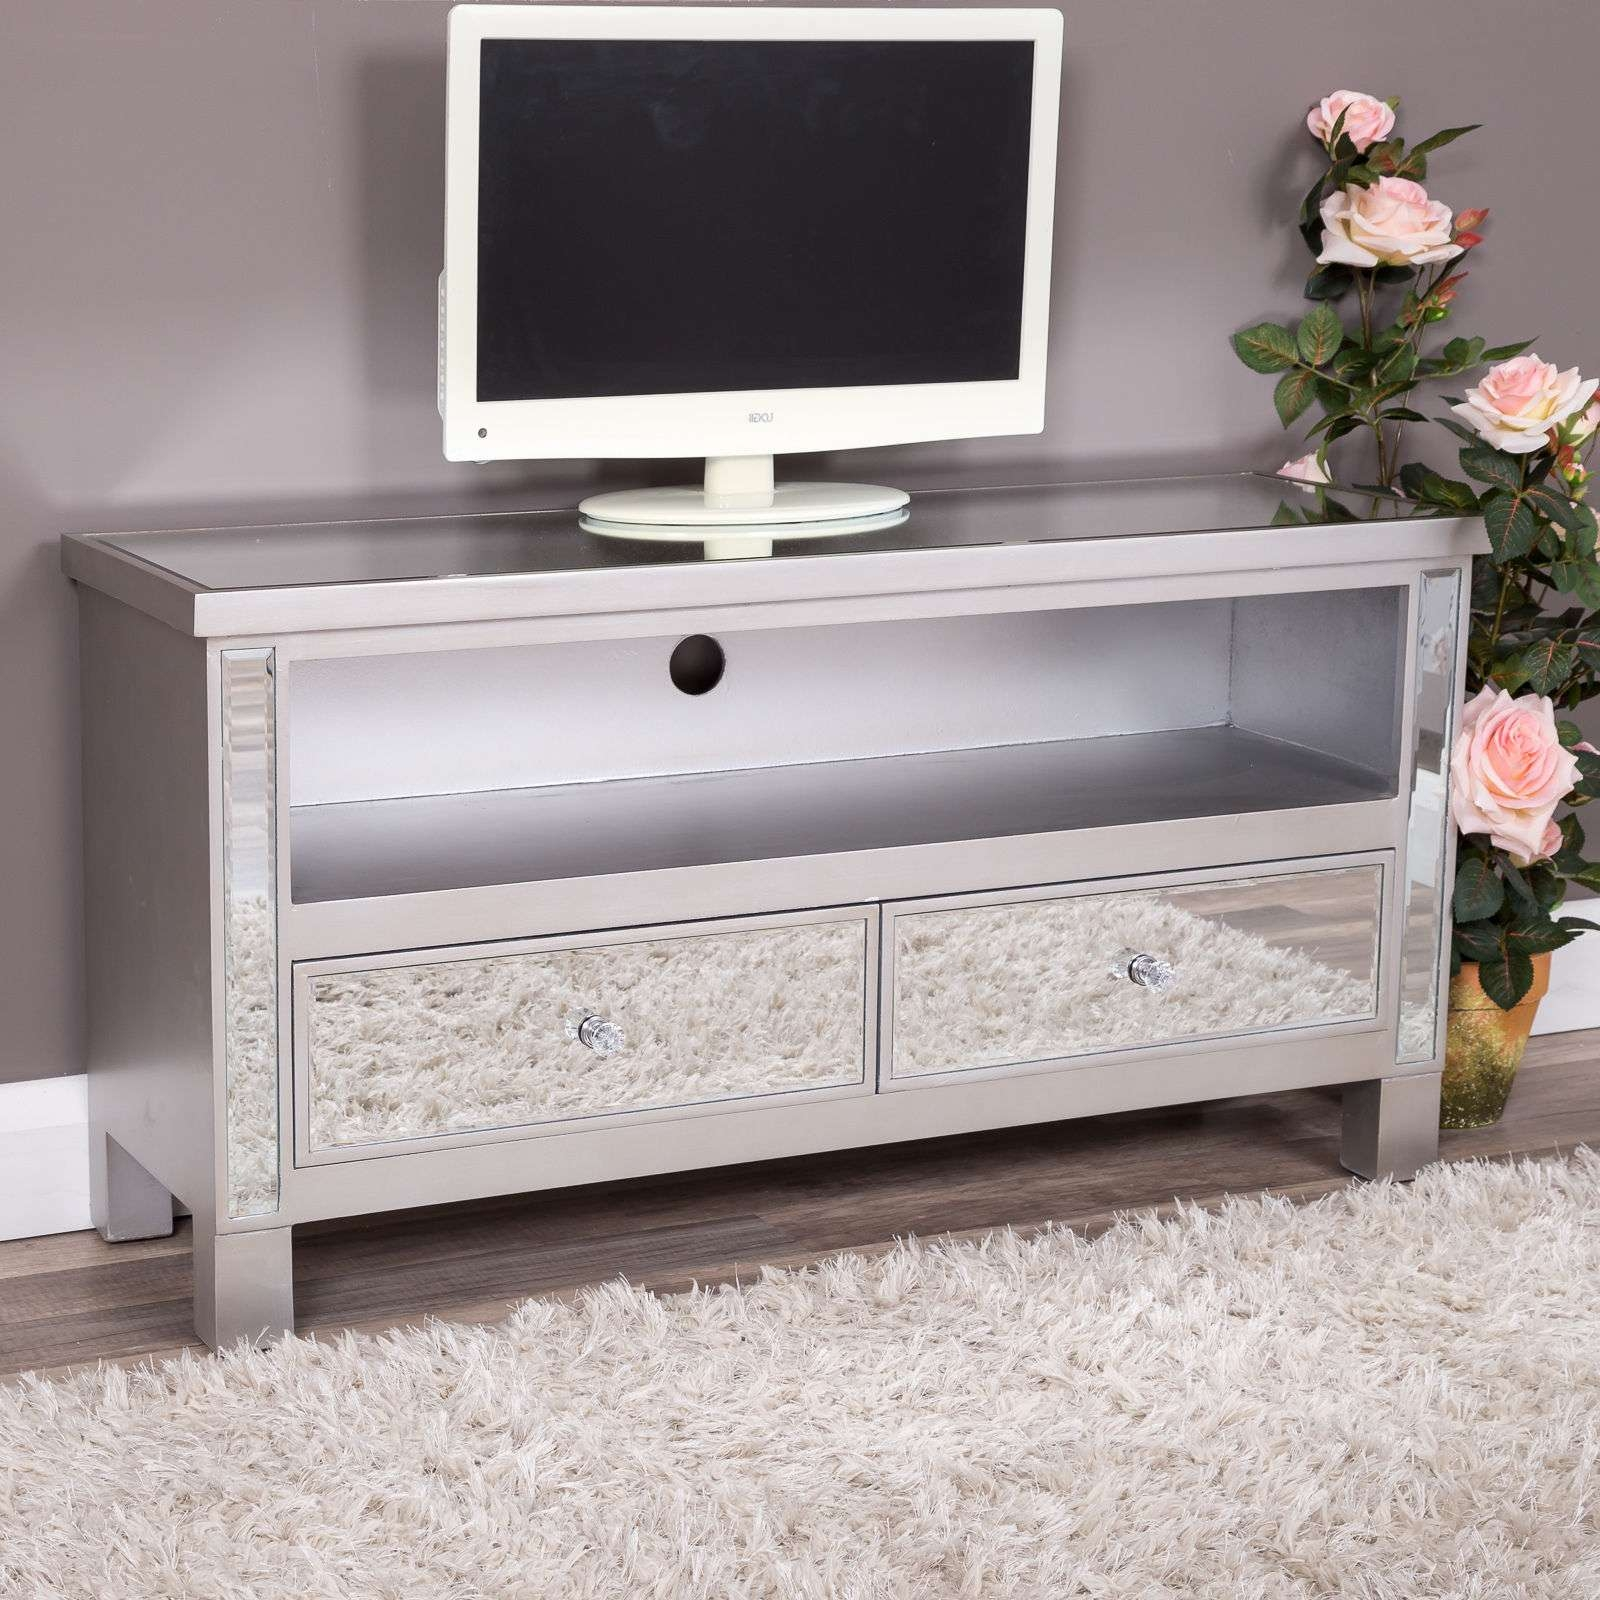 Silver Mirrored Glass 2 Drawer Tv Entertainment Cabinet Stand Unit Pertaining To Mirrored Tv Cabinets (View 17 of 20)